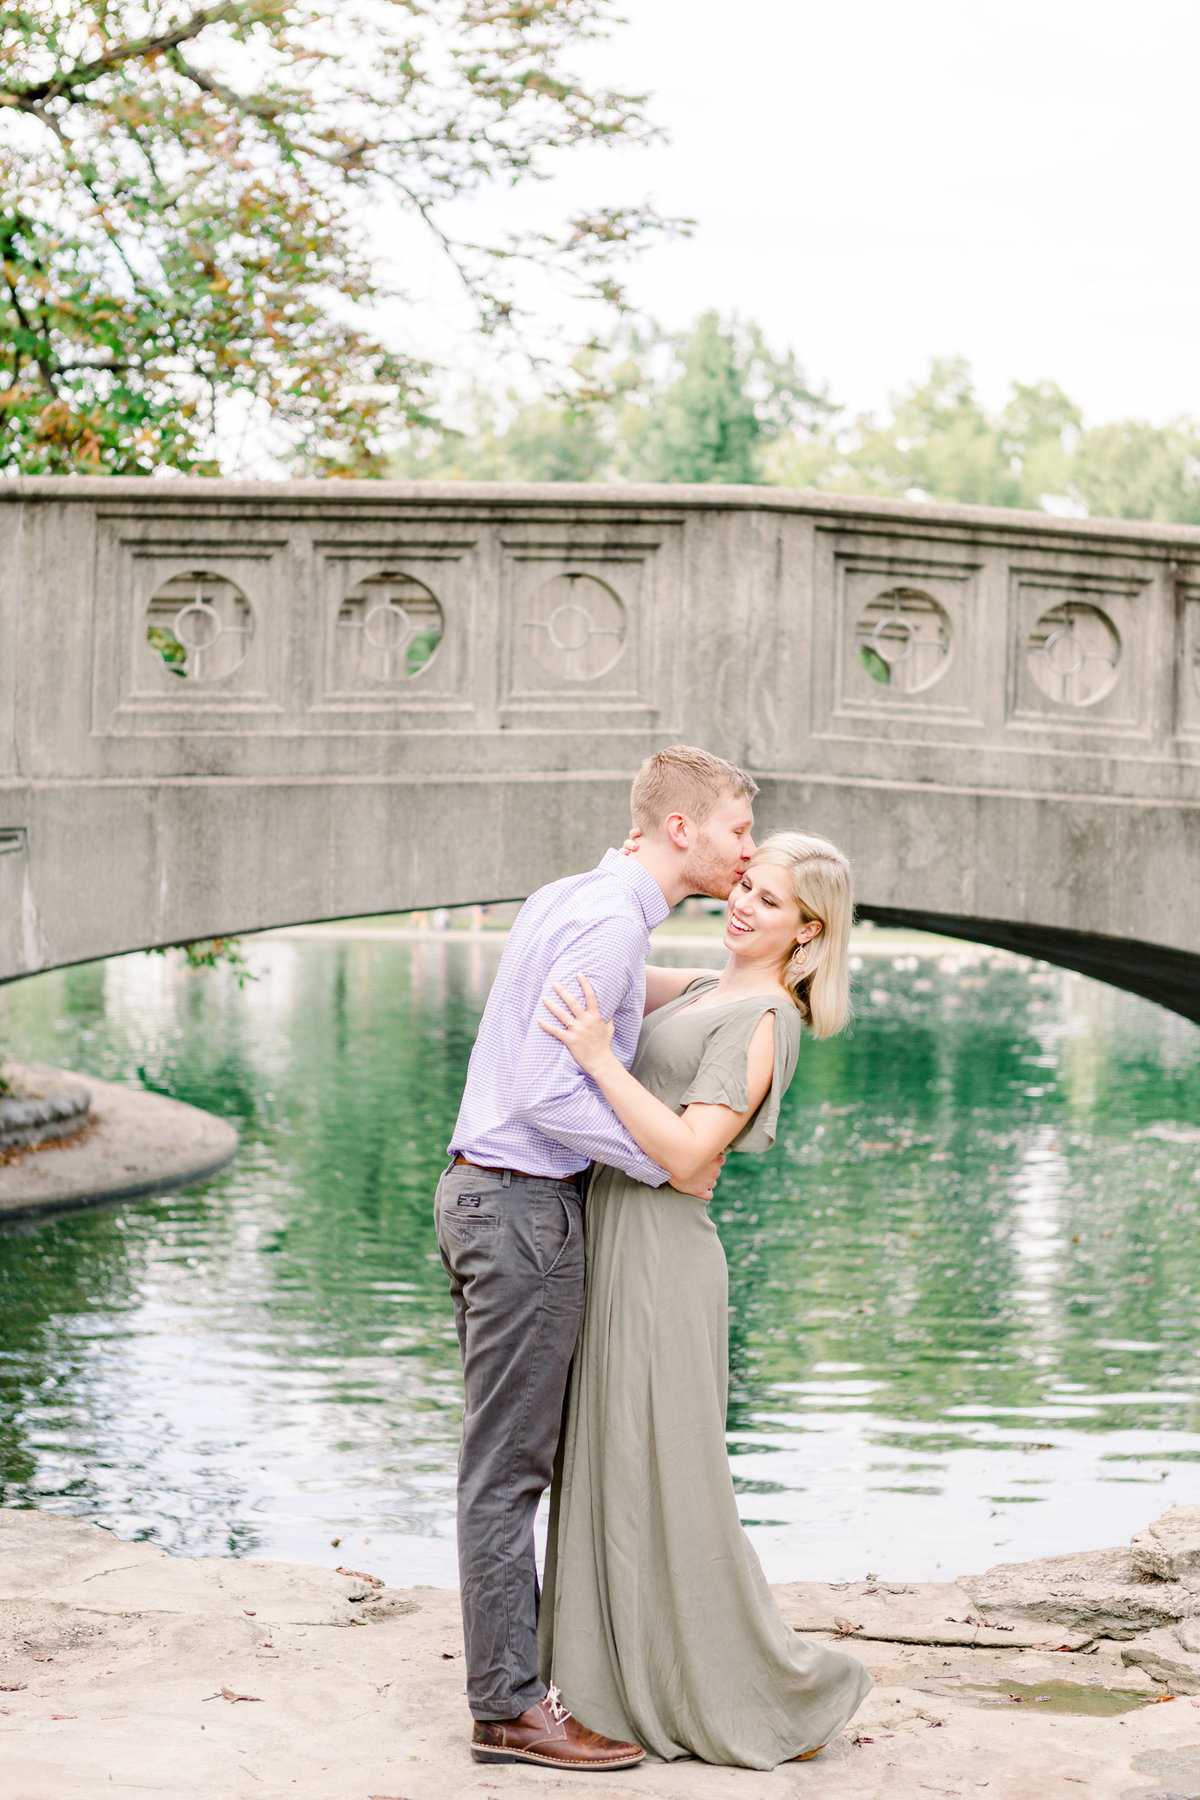 Cincinnati-engagement-wedding-photographer-eden-park-art-museum-smale-riverfront022